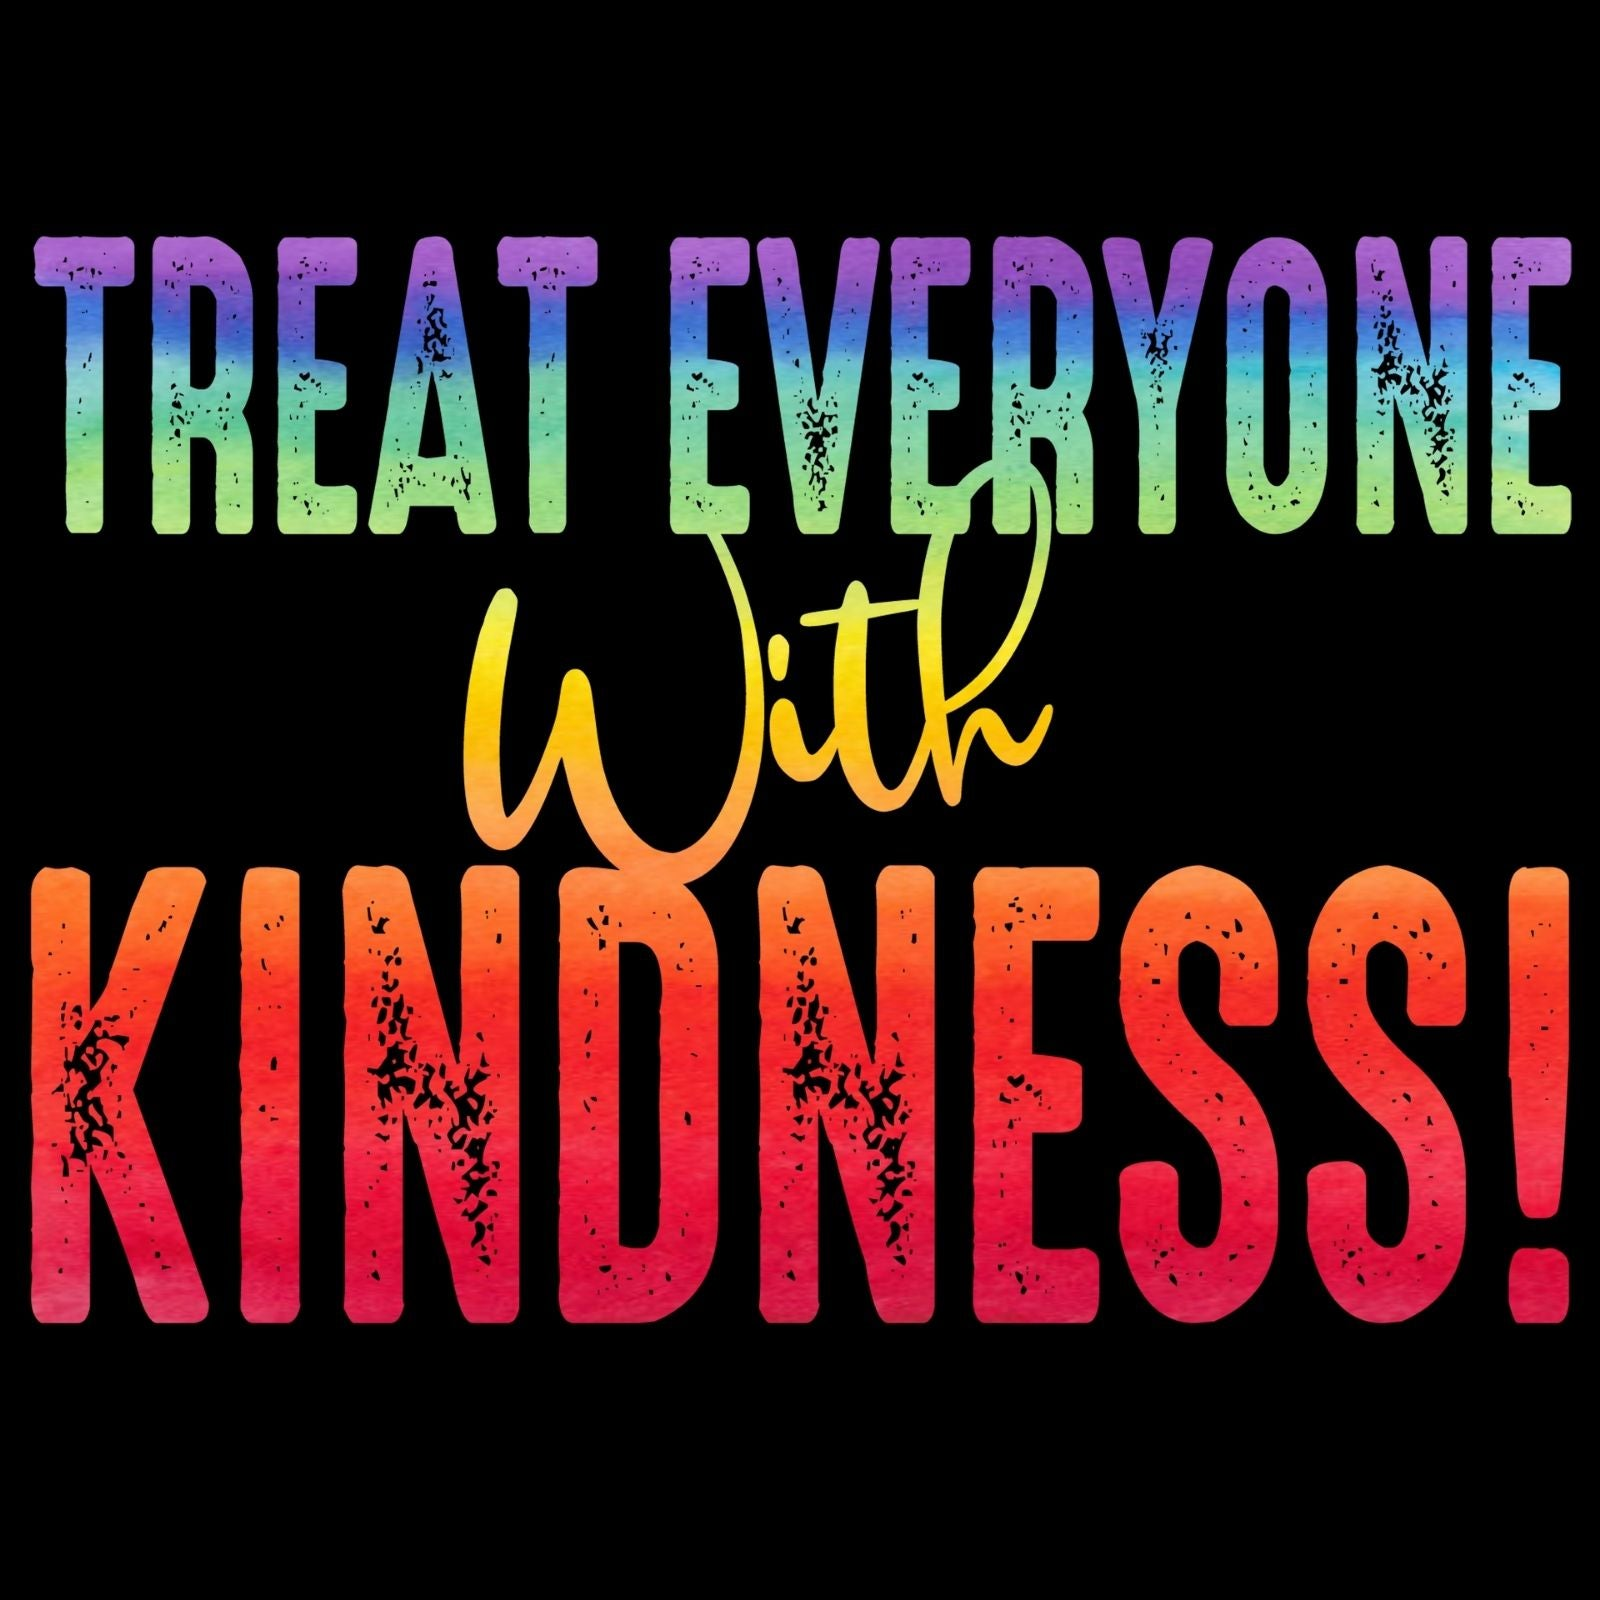 Treat Everyone With Kindness - Bastard Graphics